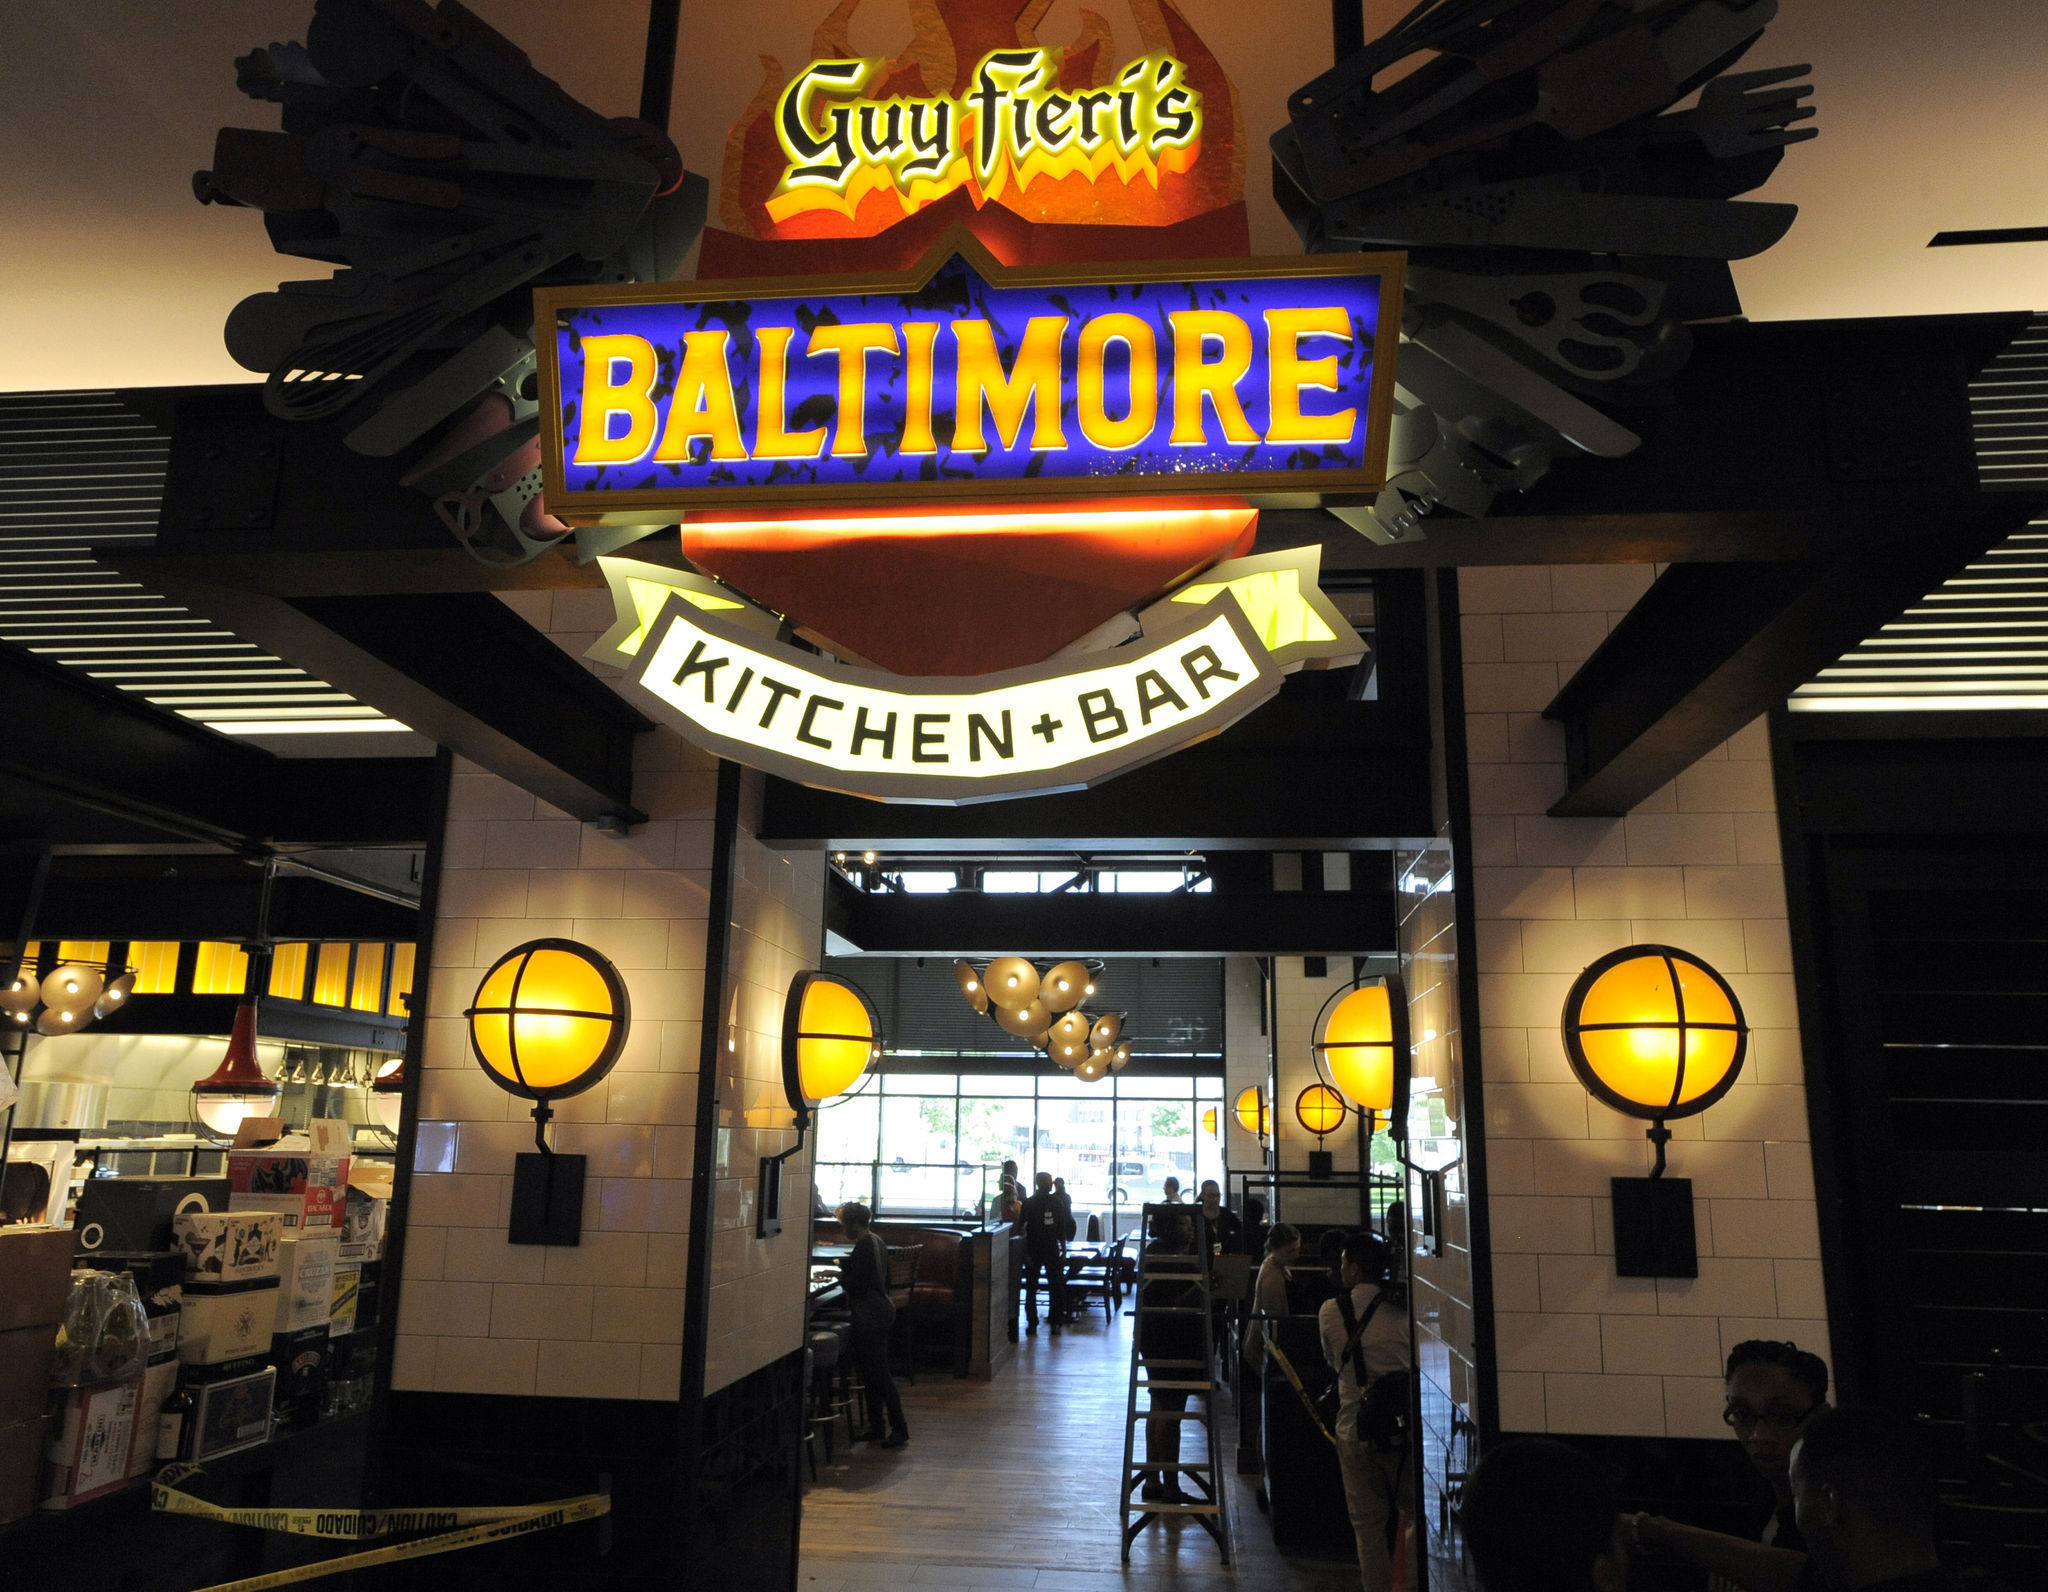 Guy Fieri Baltimore Kitchen And Bar